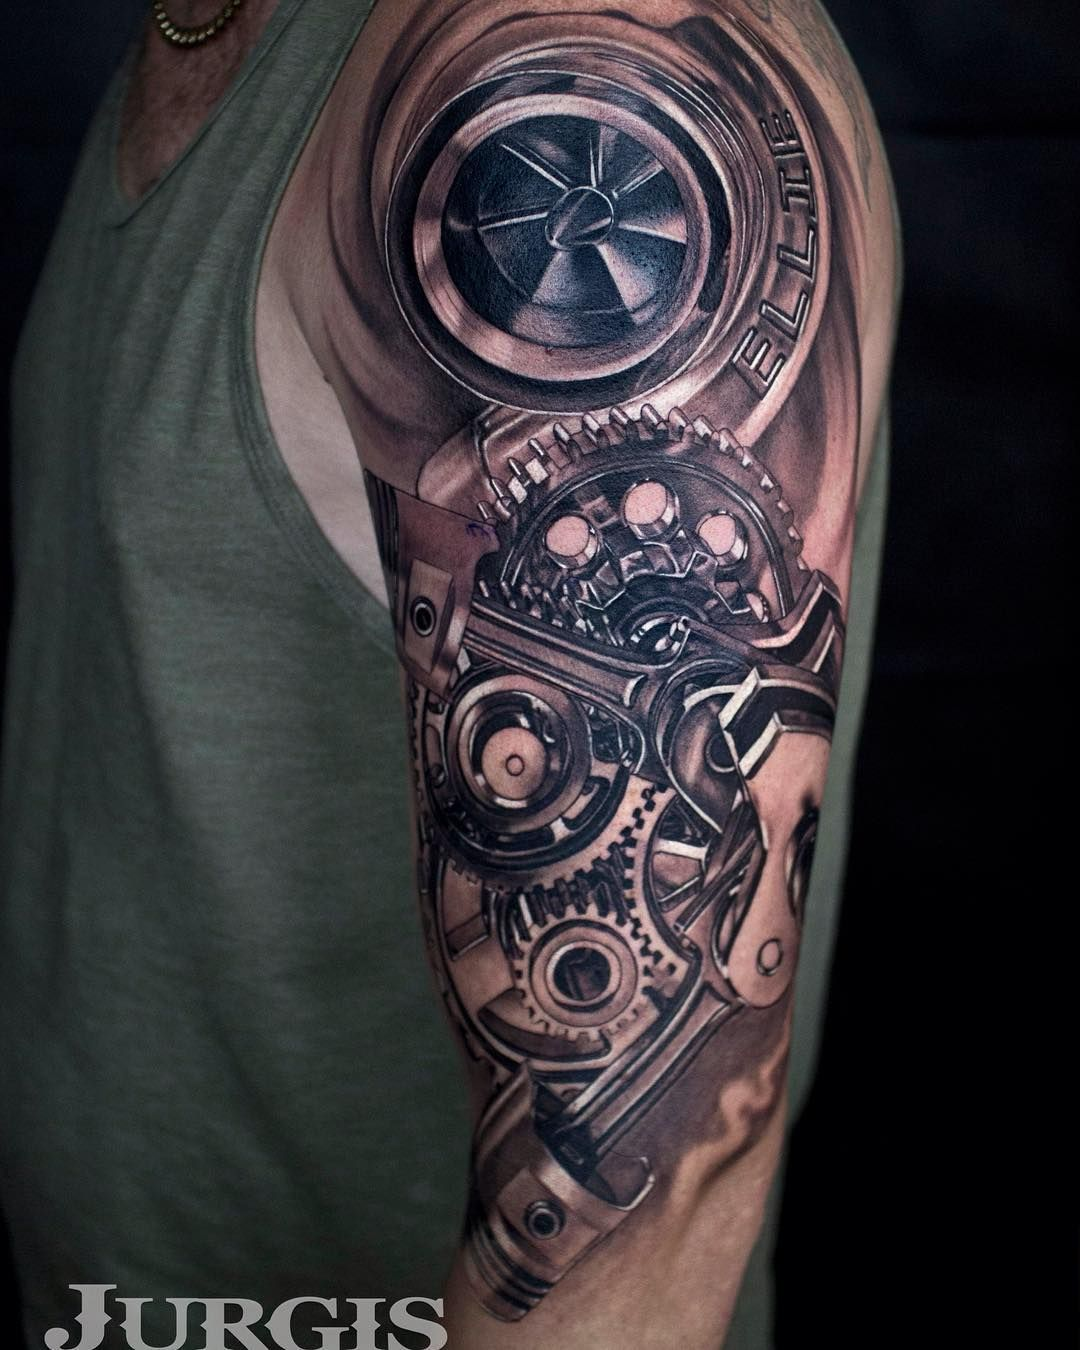 Tattoo gear tattoo sleeve mechanic tattoo mechanical tattoo gears - Custom Sleeve Film Tattoo Sleeve Tattoo Is One Of Popular Ideas For Tattoo Placement Honestly I Noticed One S Tattoo Inked On Their Arms In The First Time